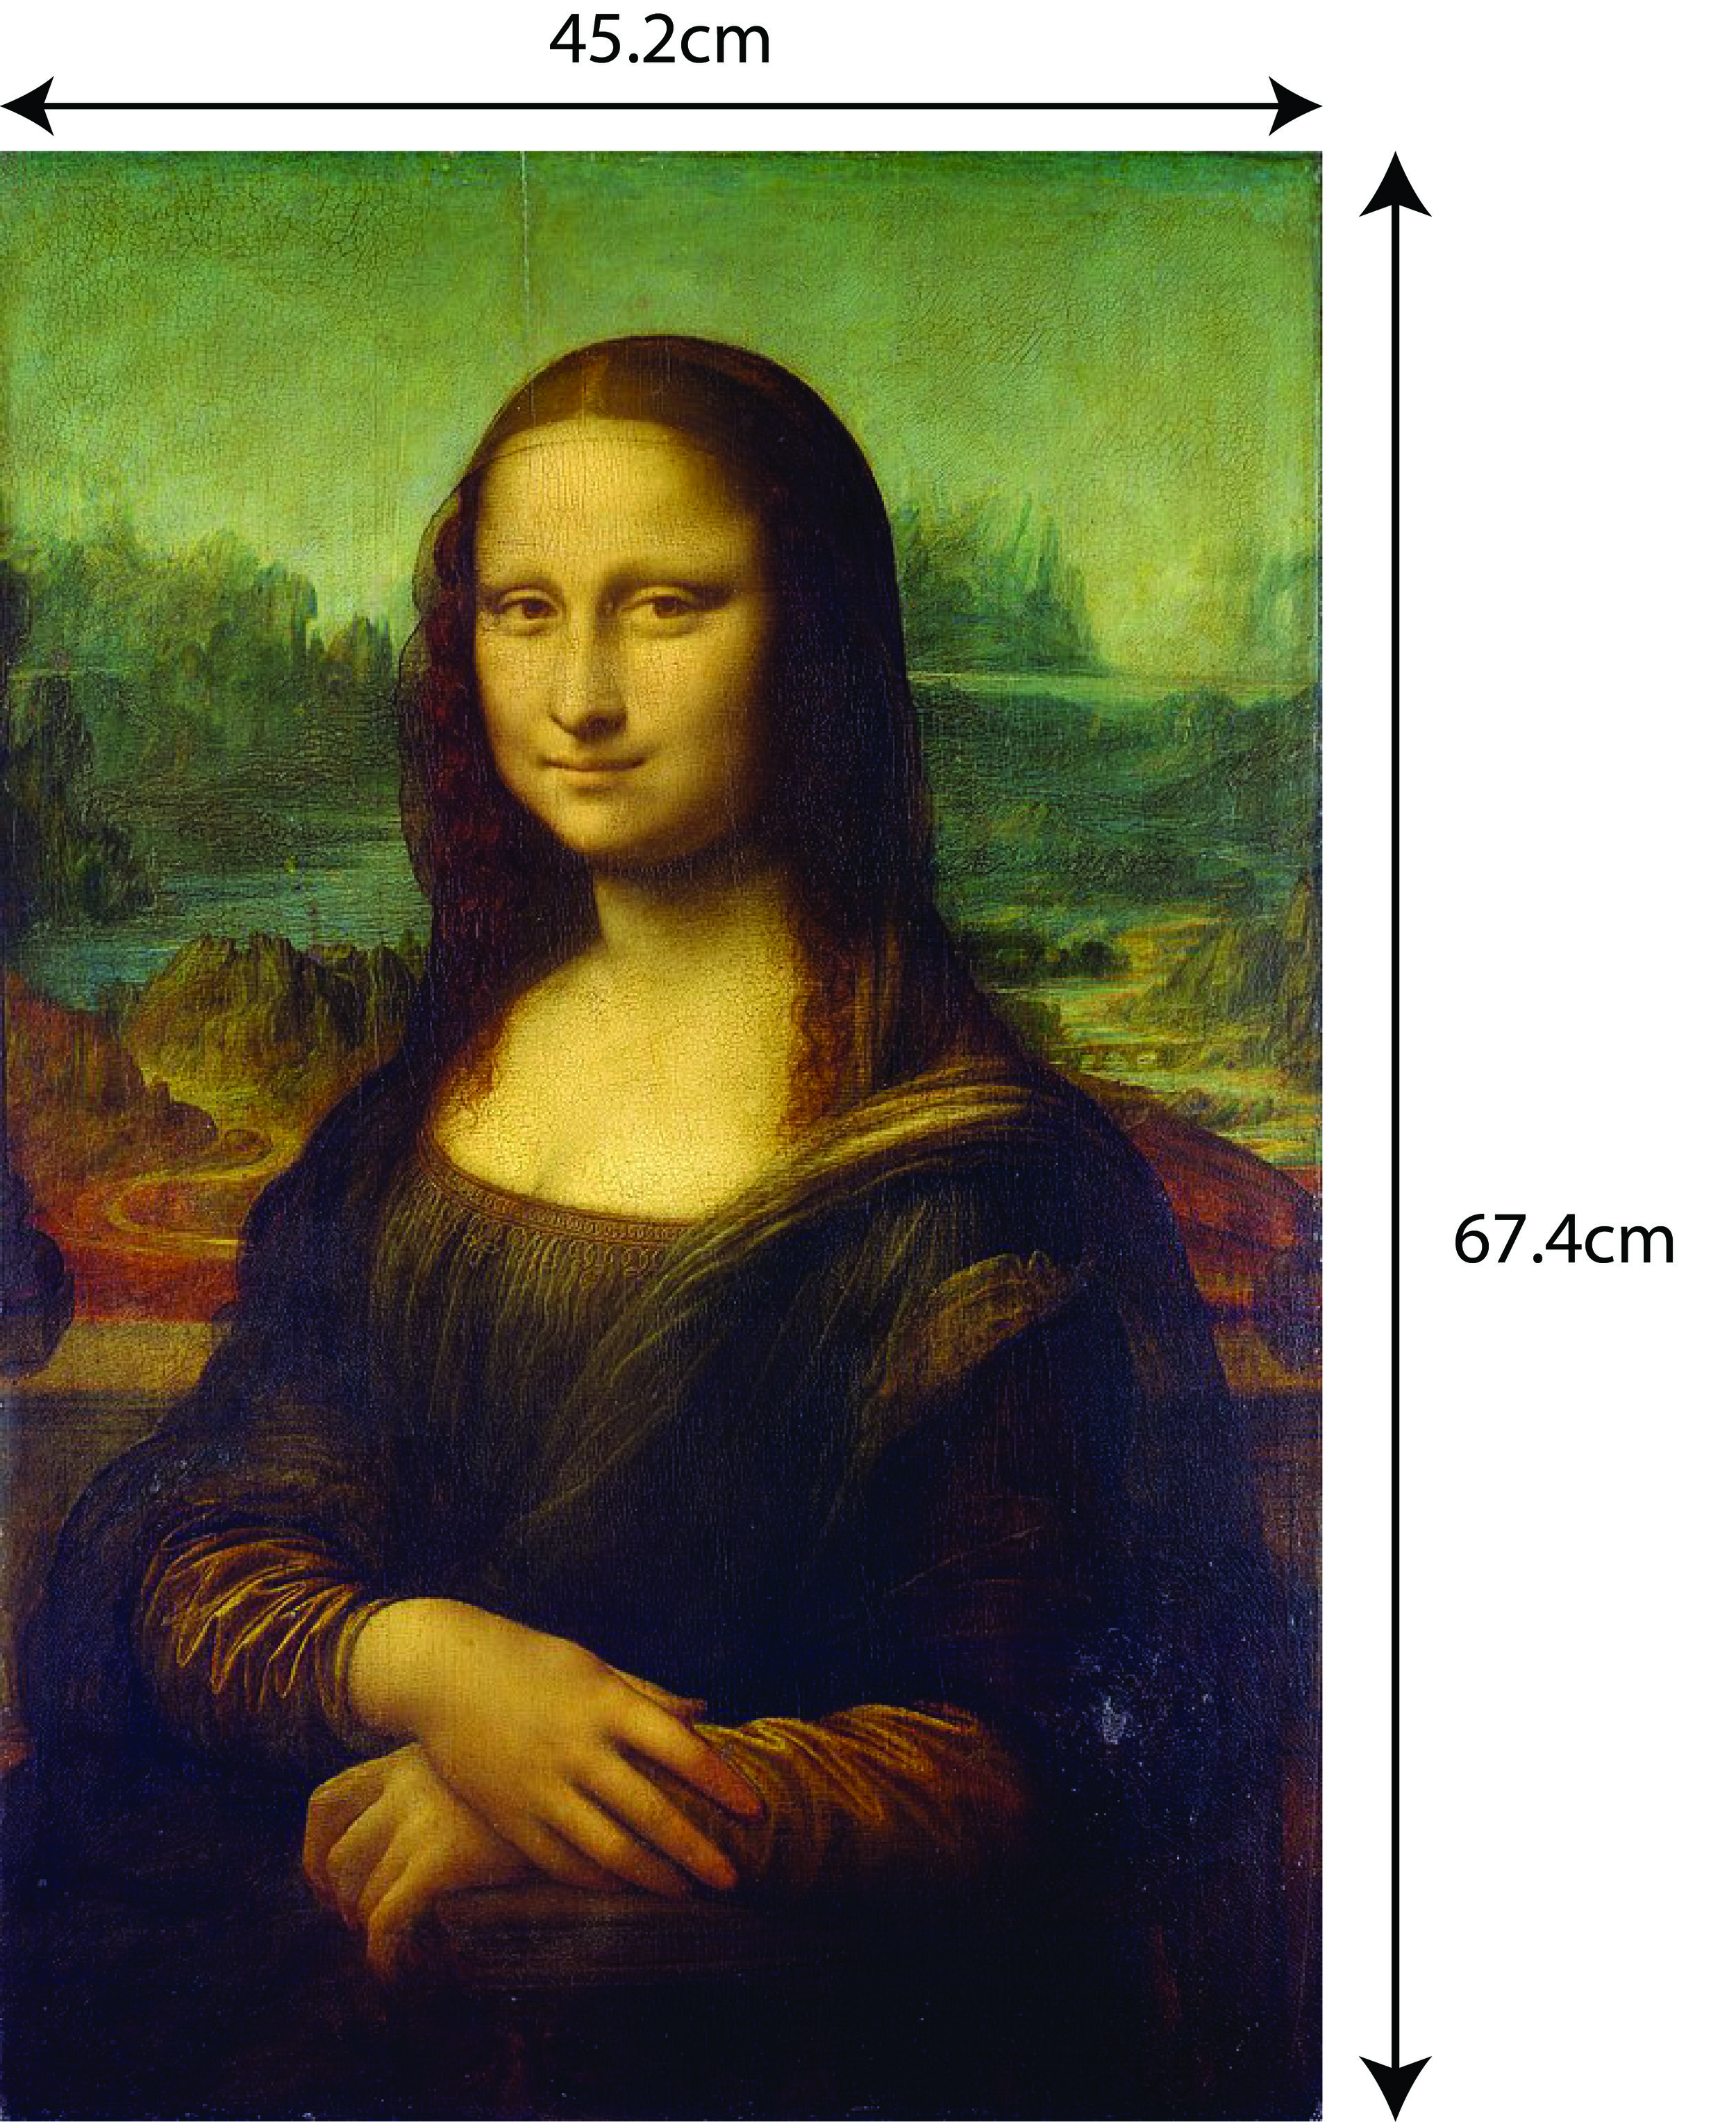 I will need to know that my print dimension is 45.2cm x 67.4cm